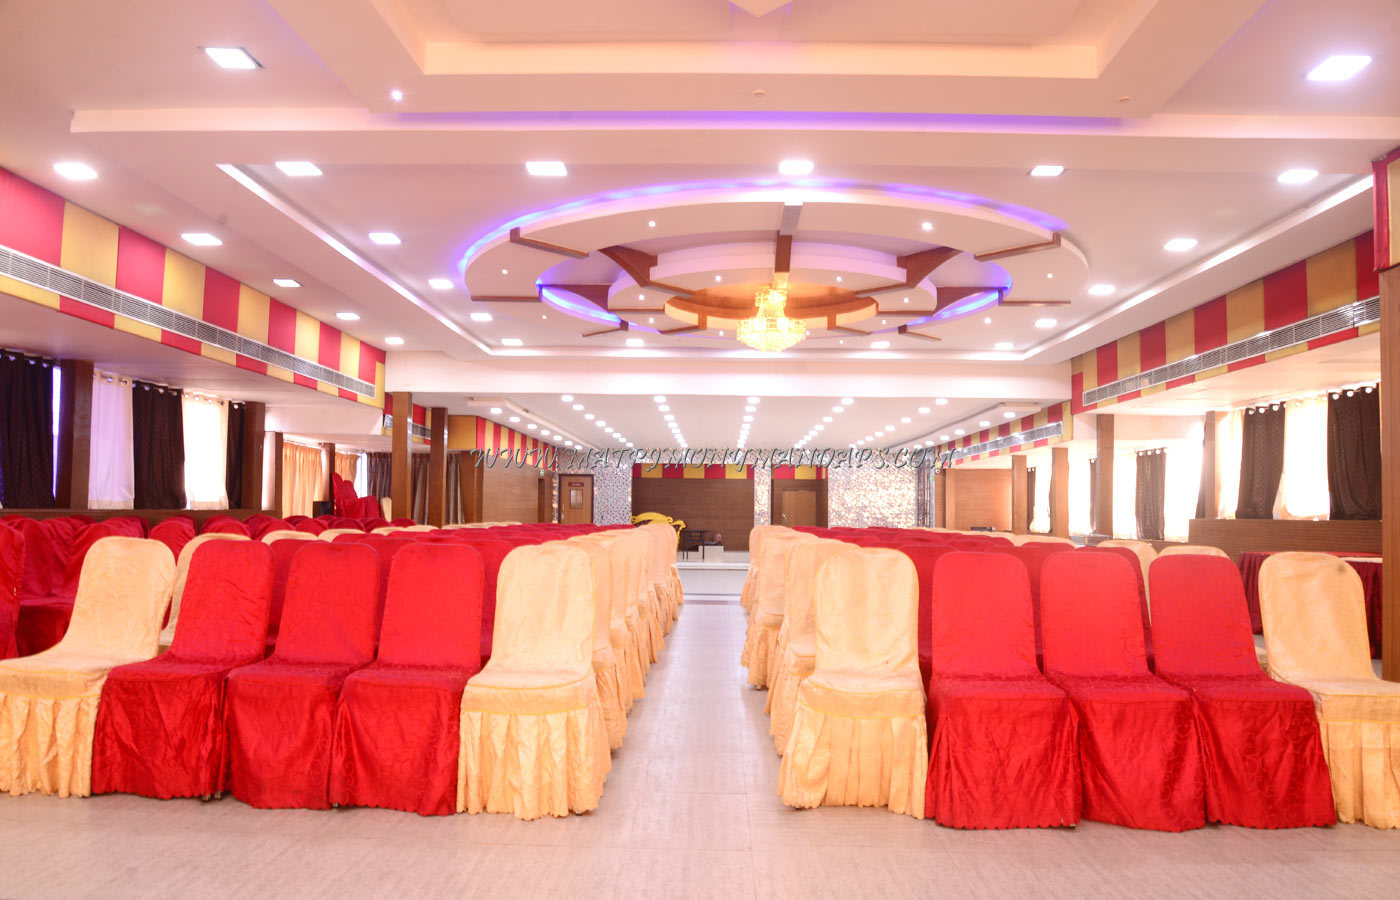 Find the availability of the Maple Tree Hotels Silver Maple (A/C) in Vadapalani, Chennai and avail special offers